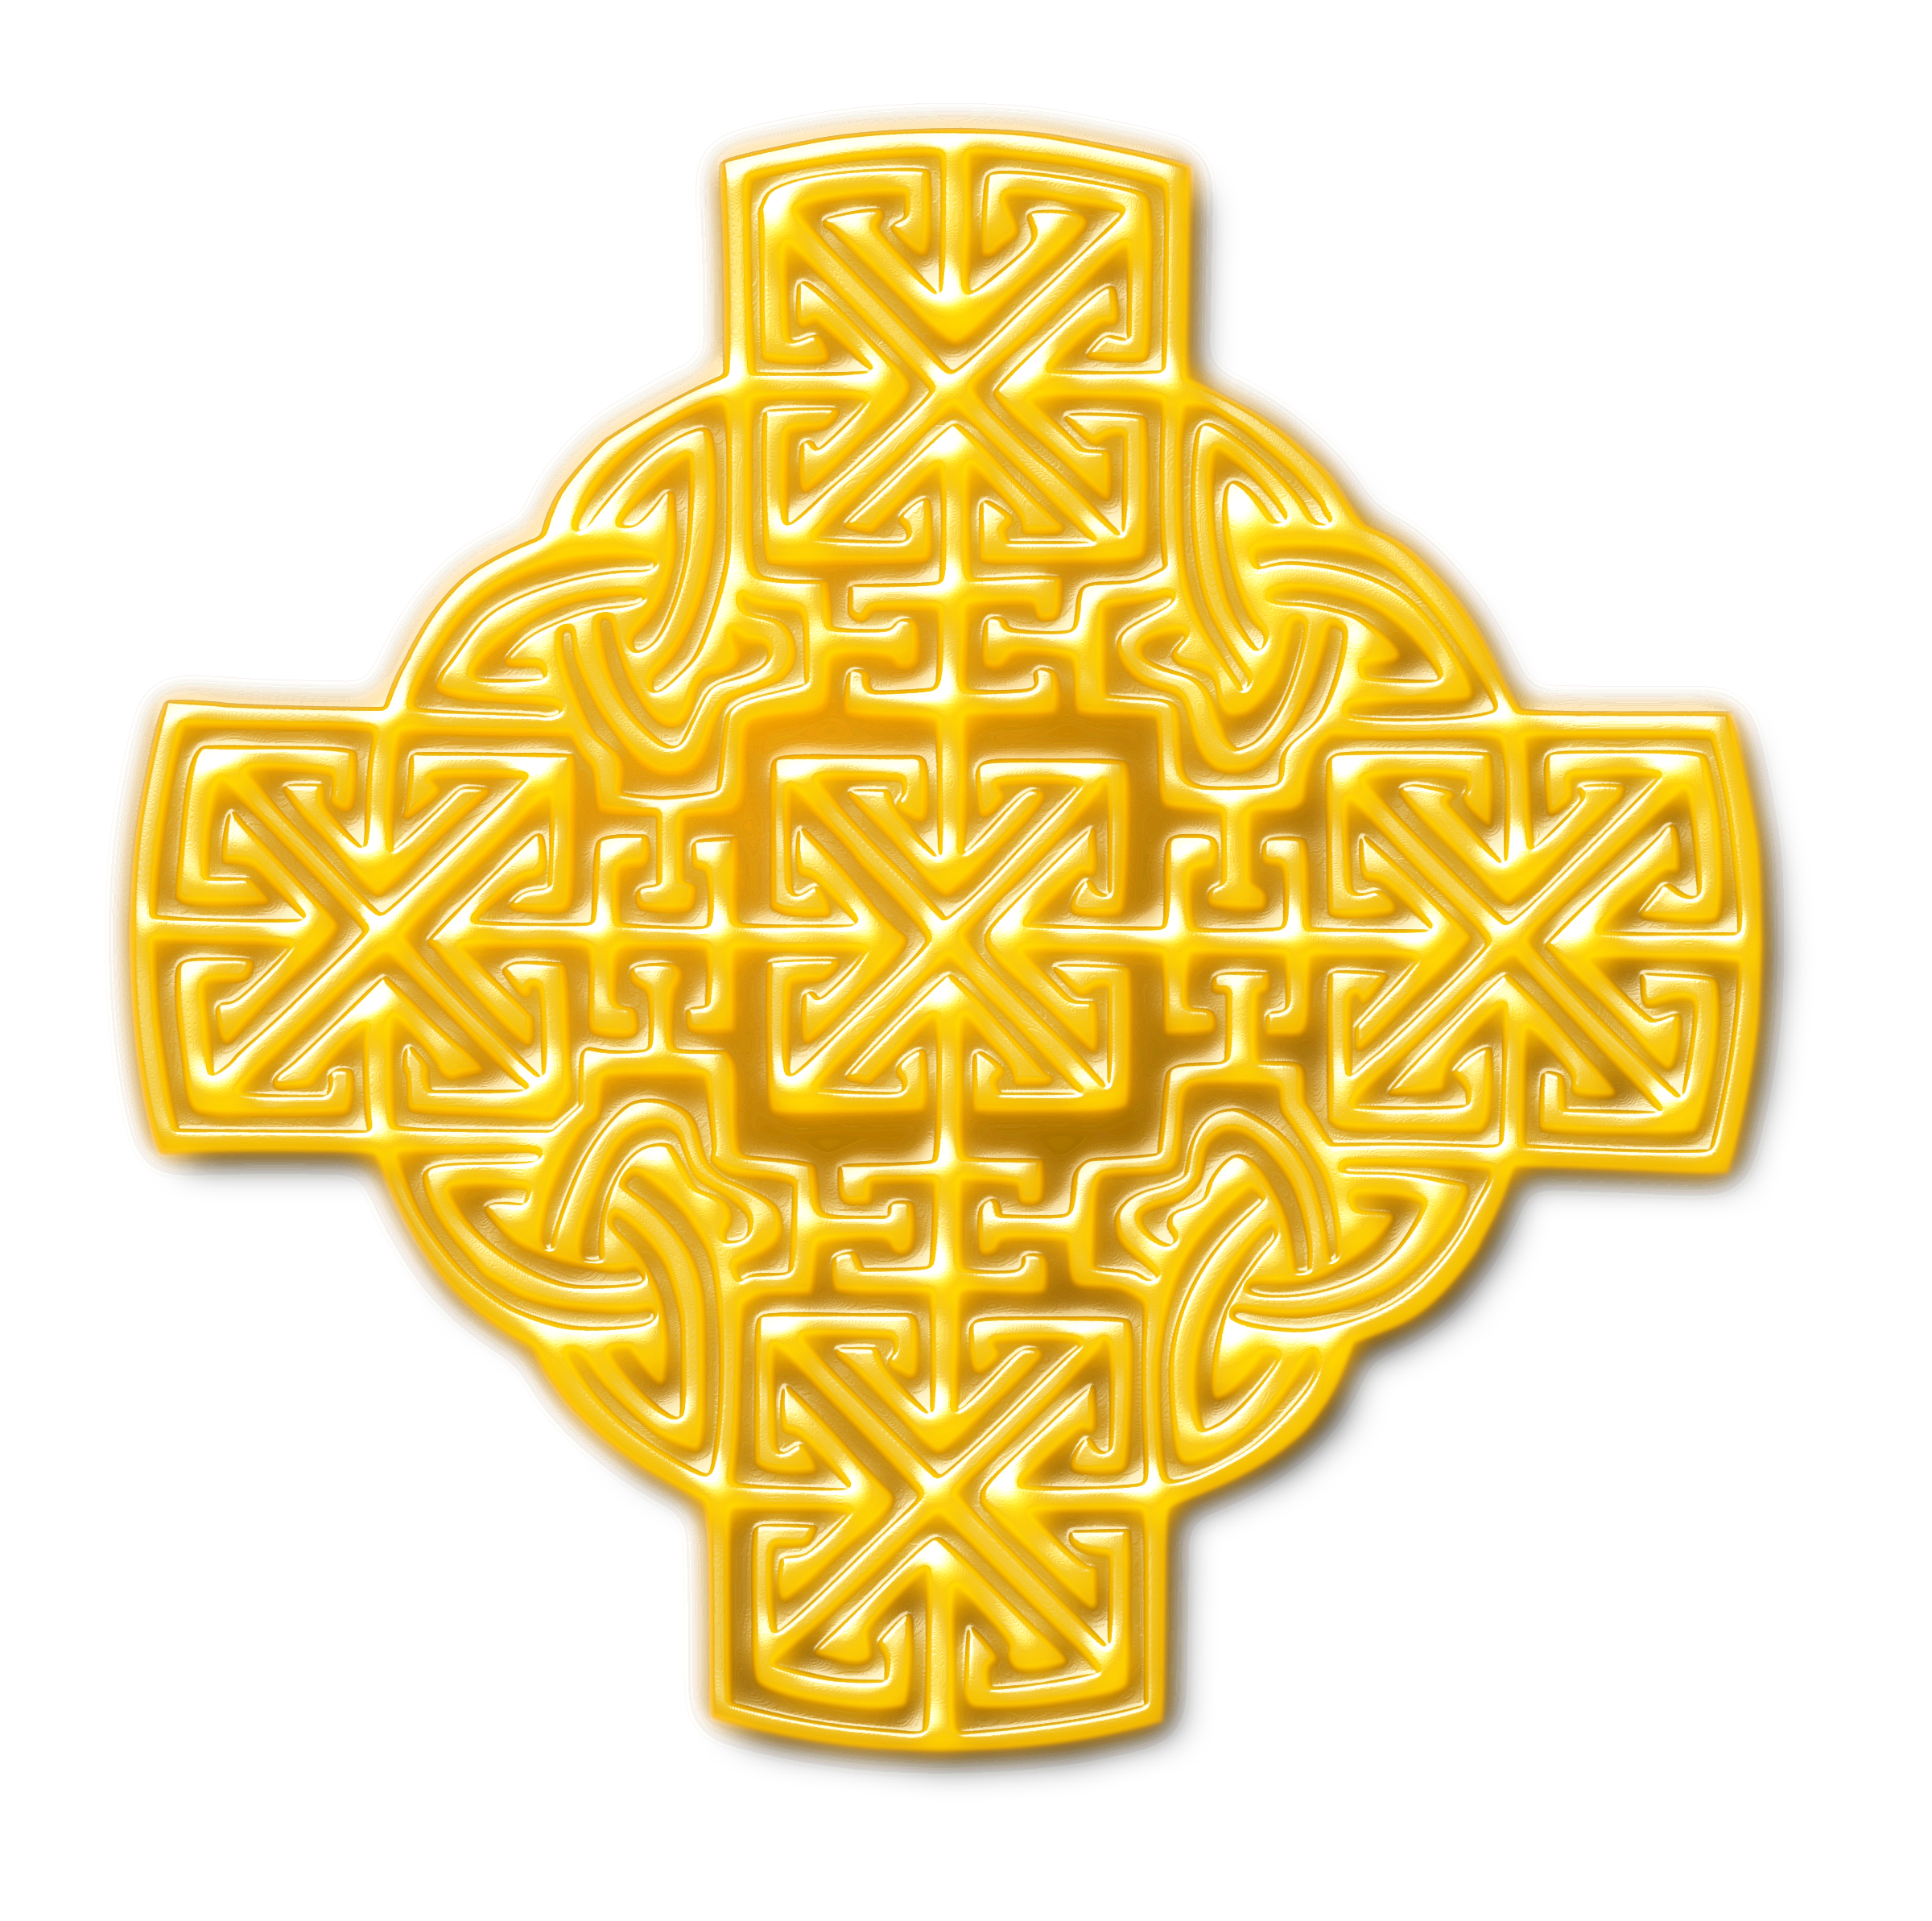 Celtic-inspired design (gold) by Firkin